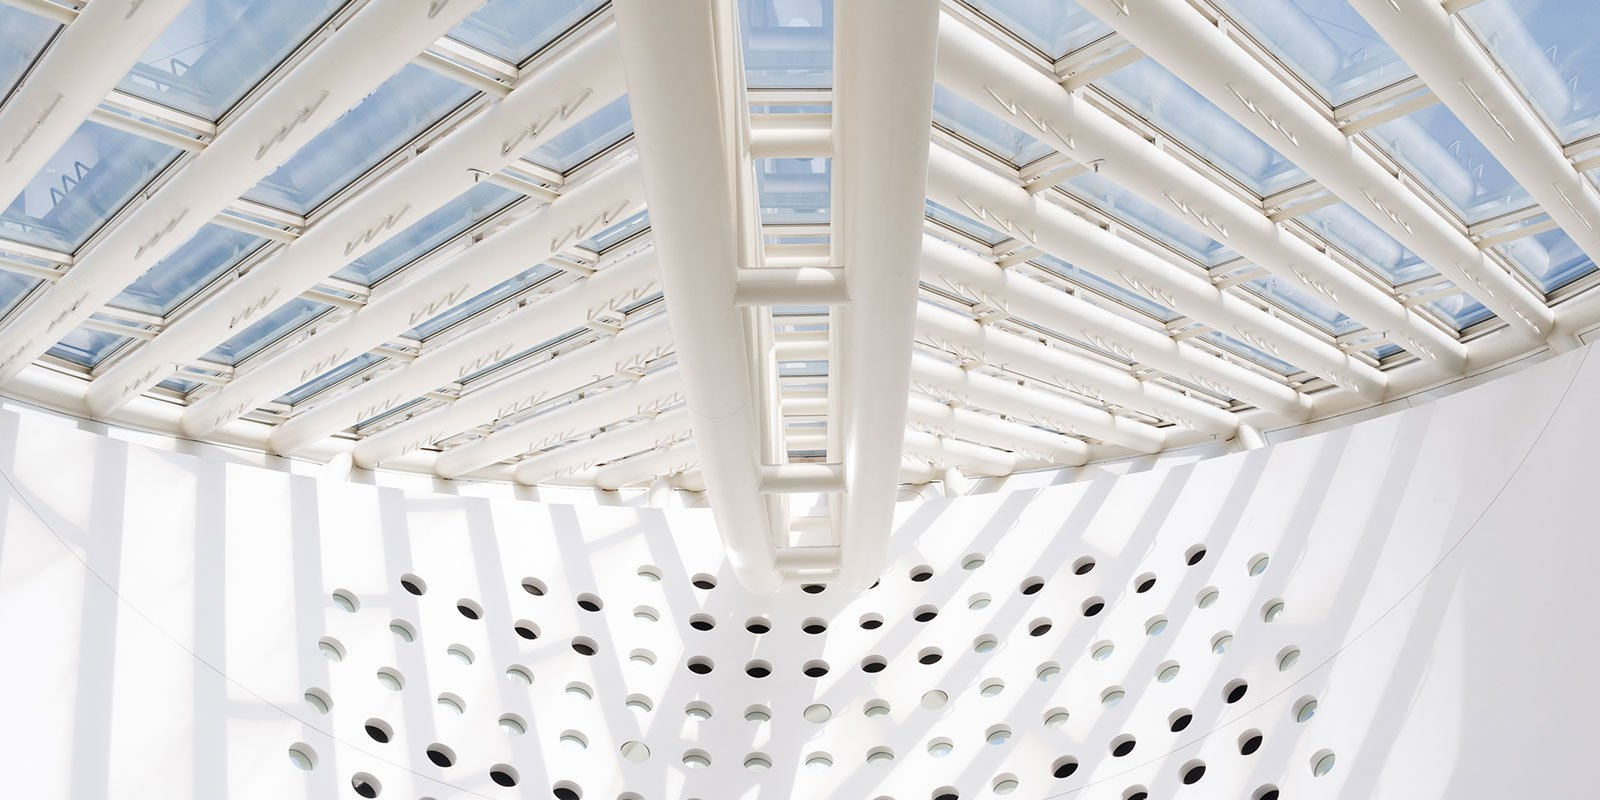 Photo of SFMOMA roof structure from inside